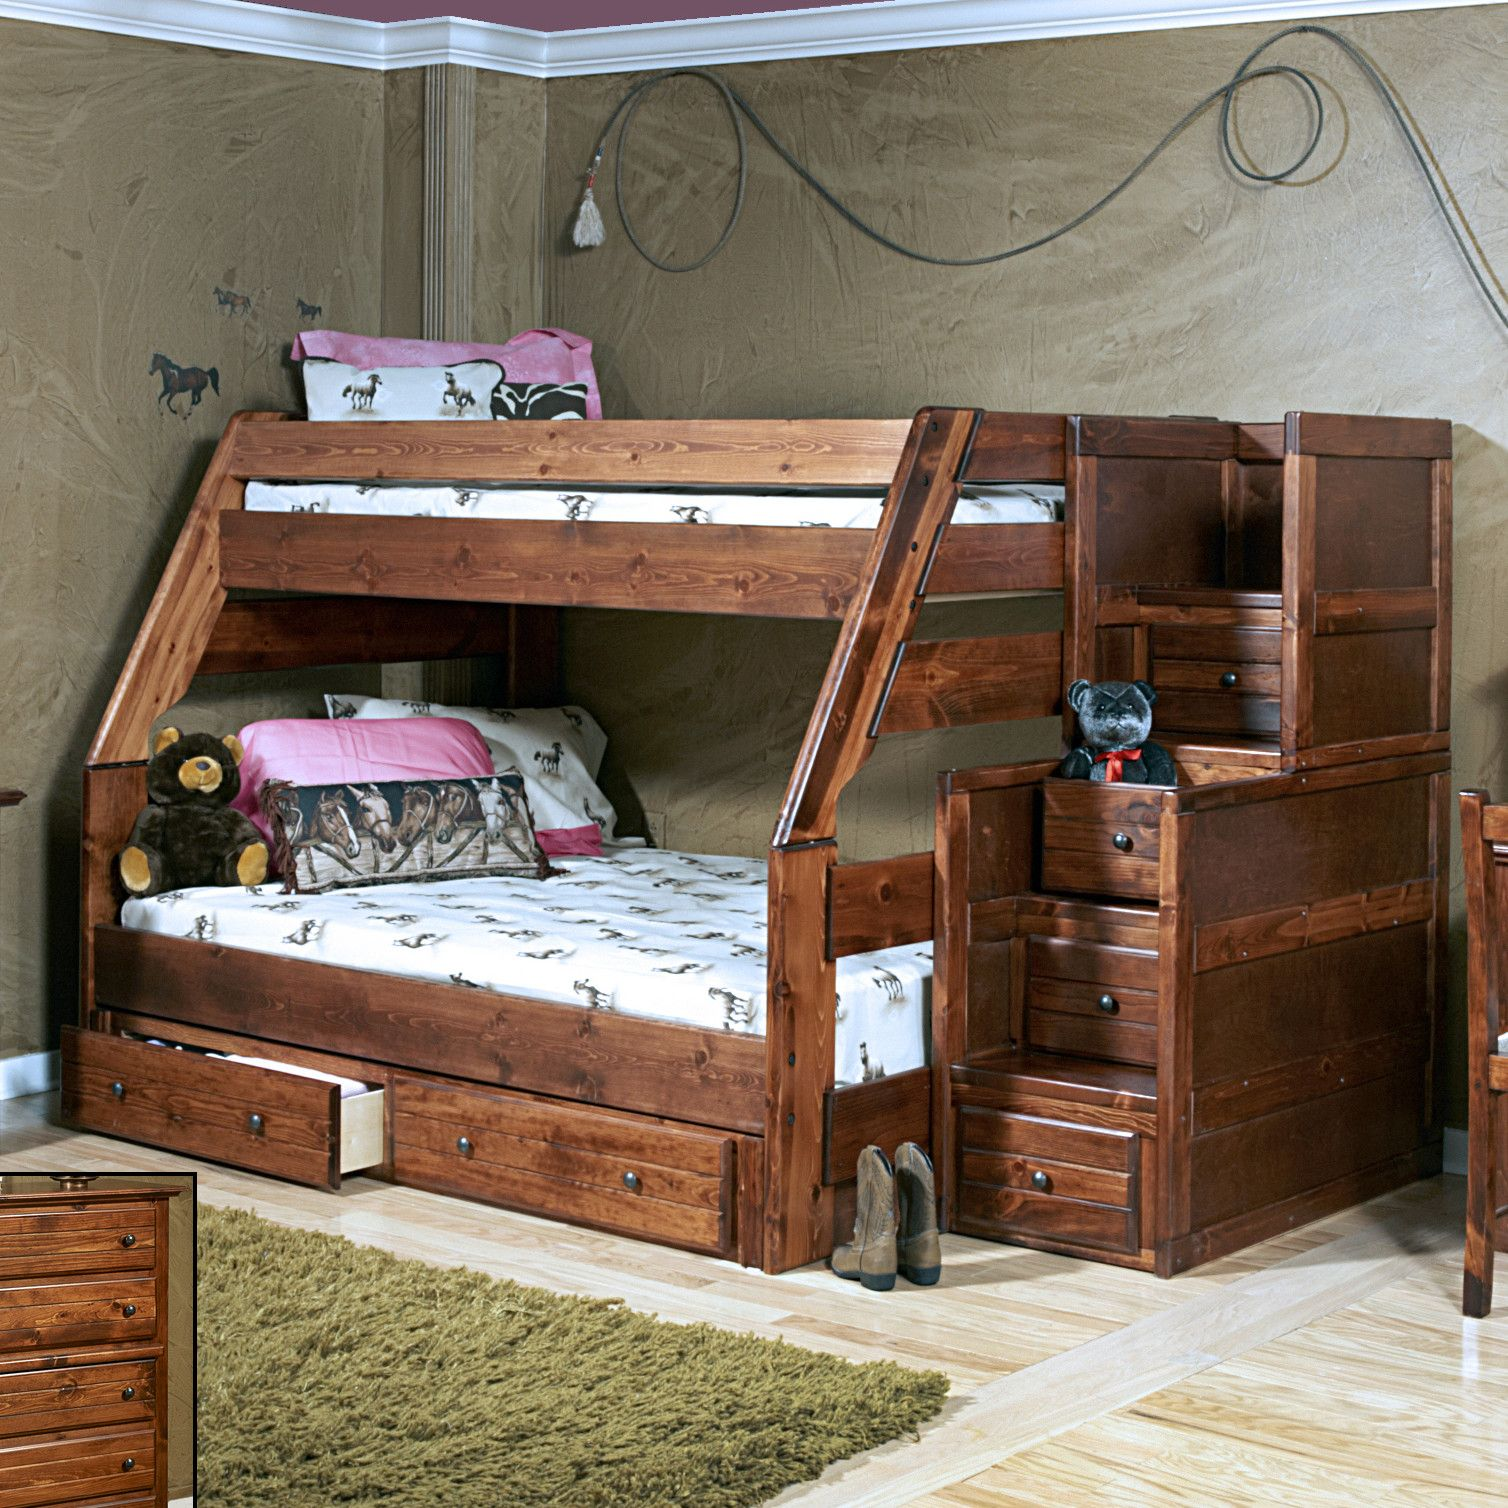 Chelsea Bedroom Chelsea Bedroom Bedside Extension For Bed: Chelsea Home Twin Over Full Standard Bunk Bed With